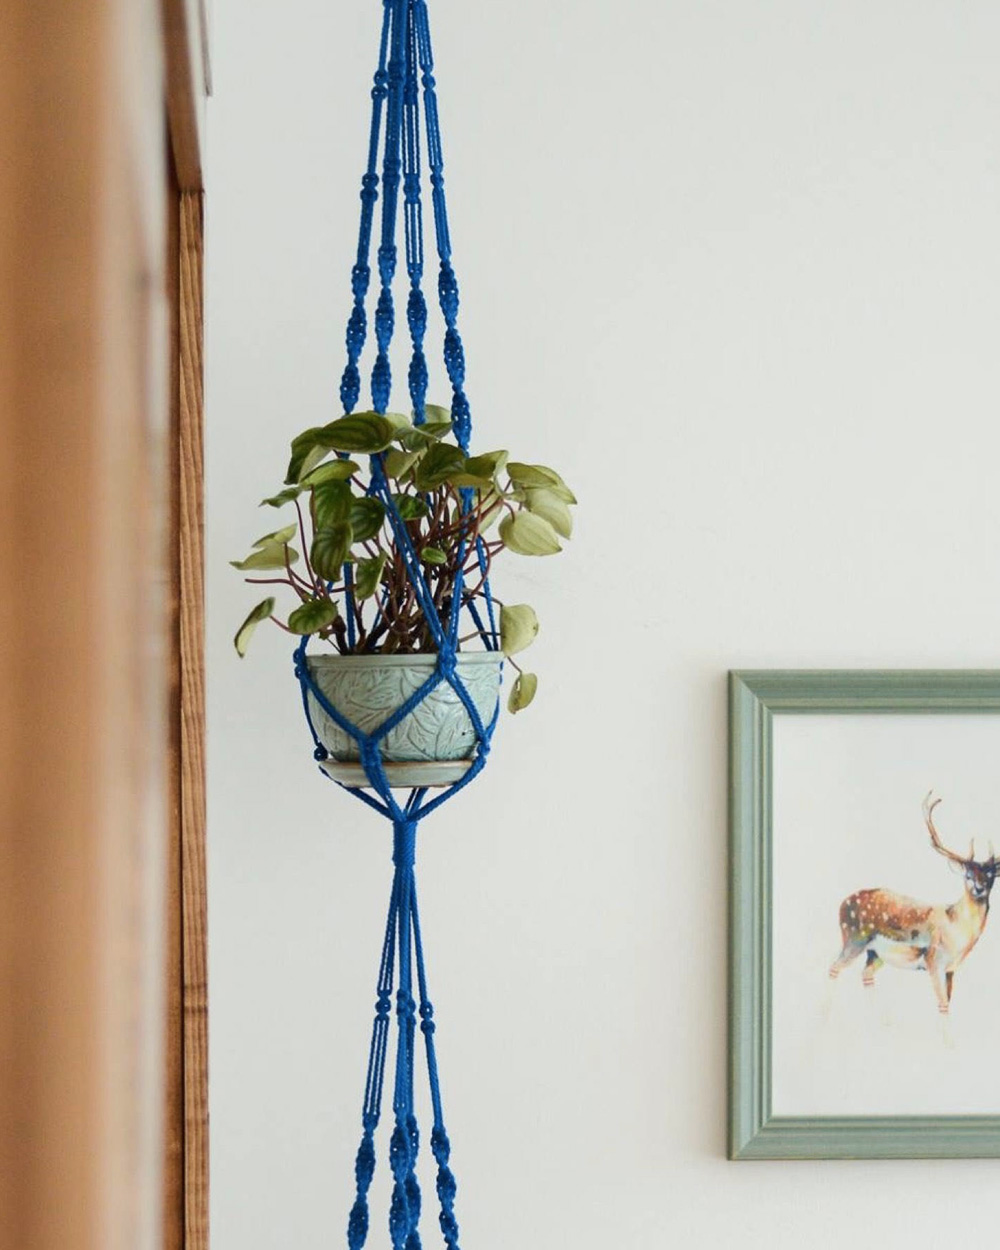 suspension plante diy macramé bleu